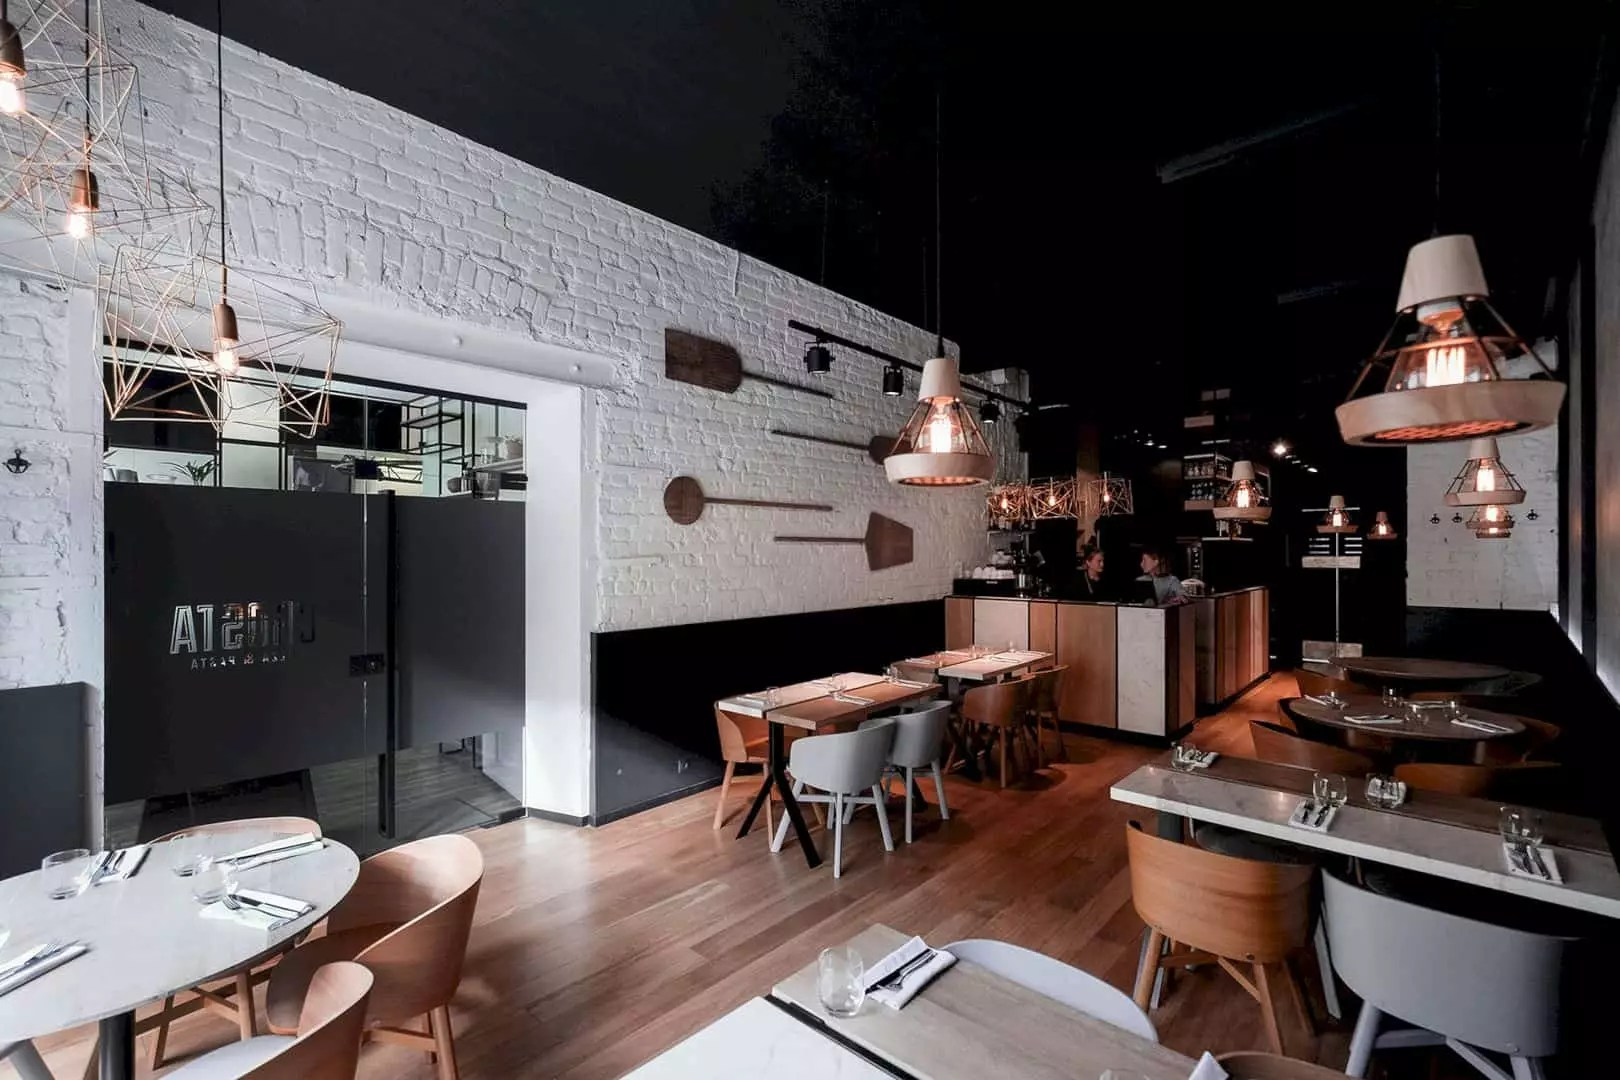 CROSTA Pizza & Pasta: Modern Minimalist Interior of Pizza Restaurant with Universal Colors